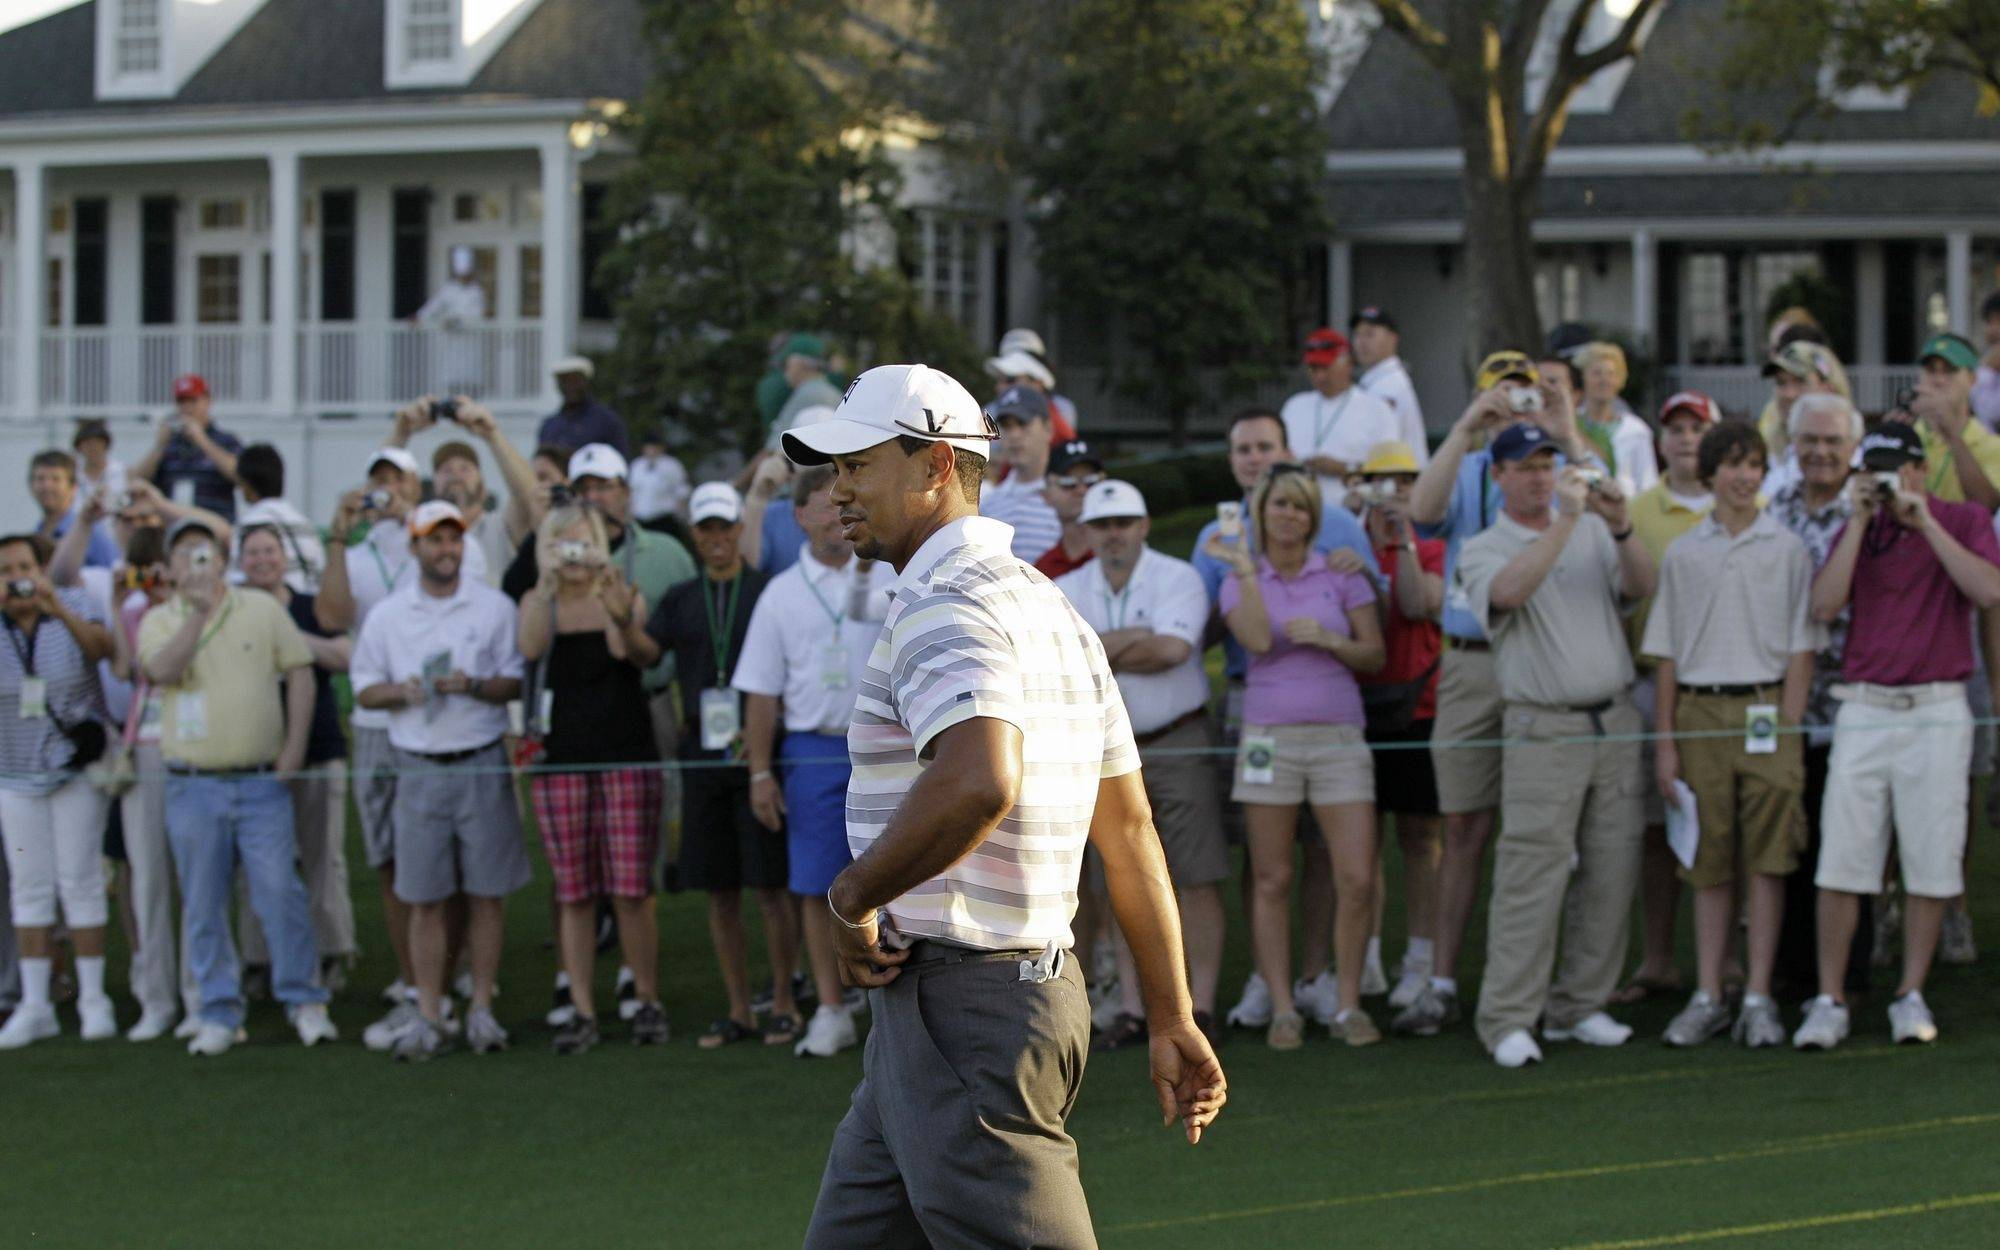 Spectators take photos as Tiger Woods walks down the first fairway during a practice round for the Masters golf tournament in Augusta, Ga. on Monday. The tournament begins.